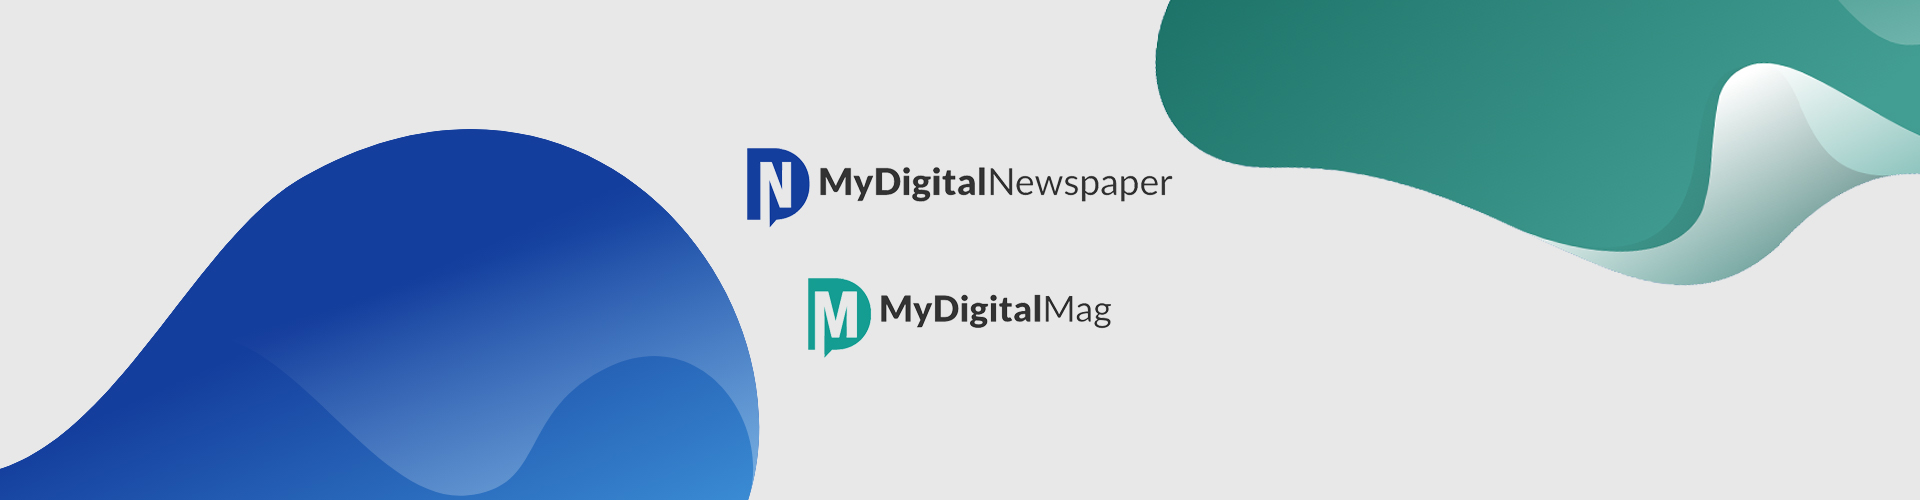 Image of MyDigitalNewspaper & MyDigitalMag